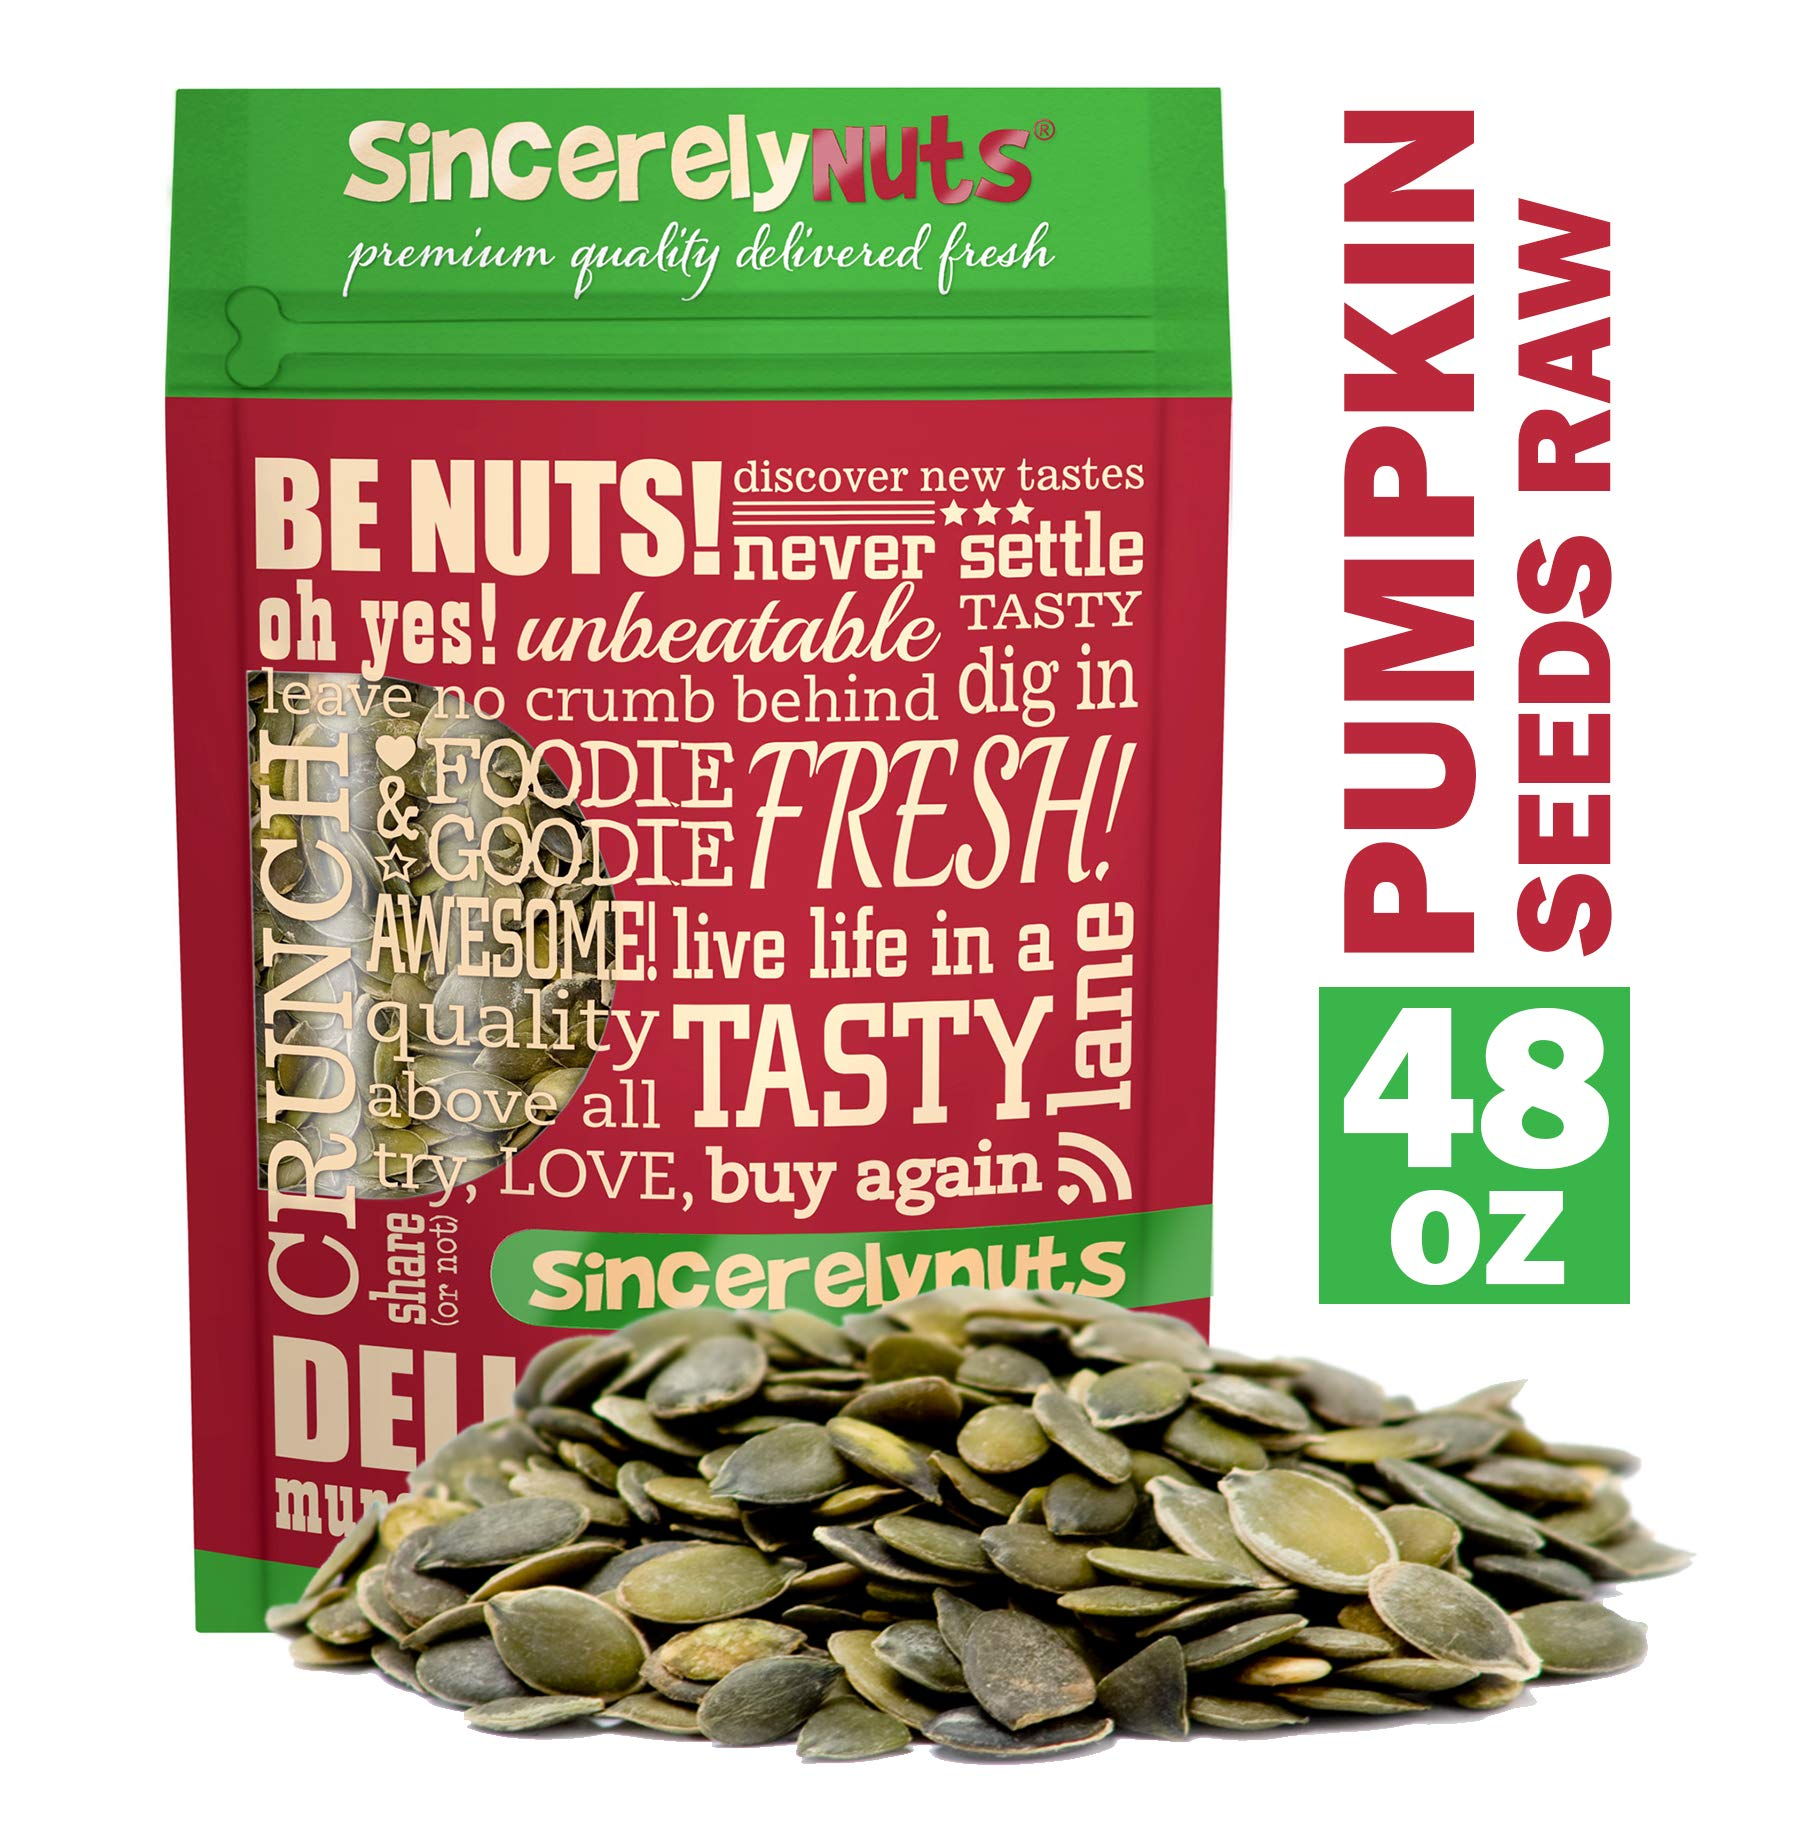 Sincerely Nuts - Raw Shelled Pepitas Pumpkin Seeds (Unsalted) (3lb bag) | All Natural Snack Food for Eating or Cooking | Vegan, Kosher, Gluten Free Food | Protein & Antioxidants